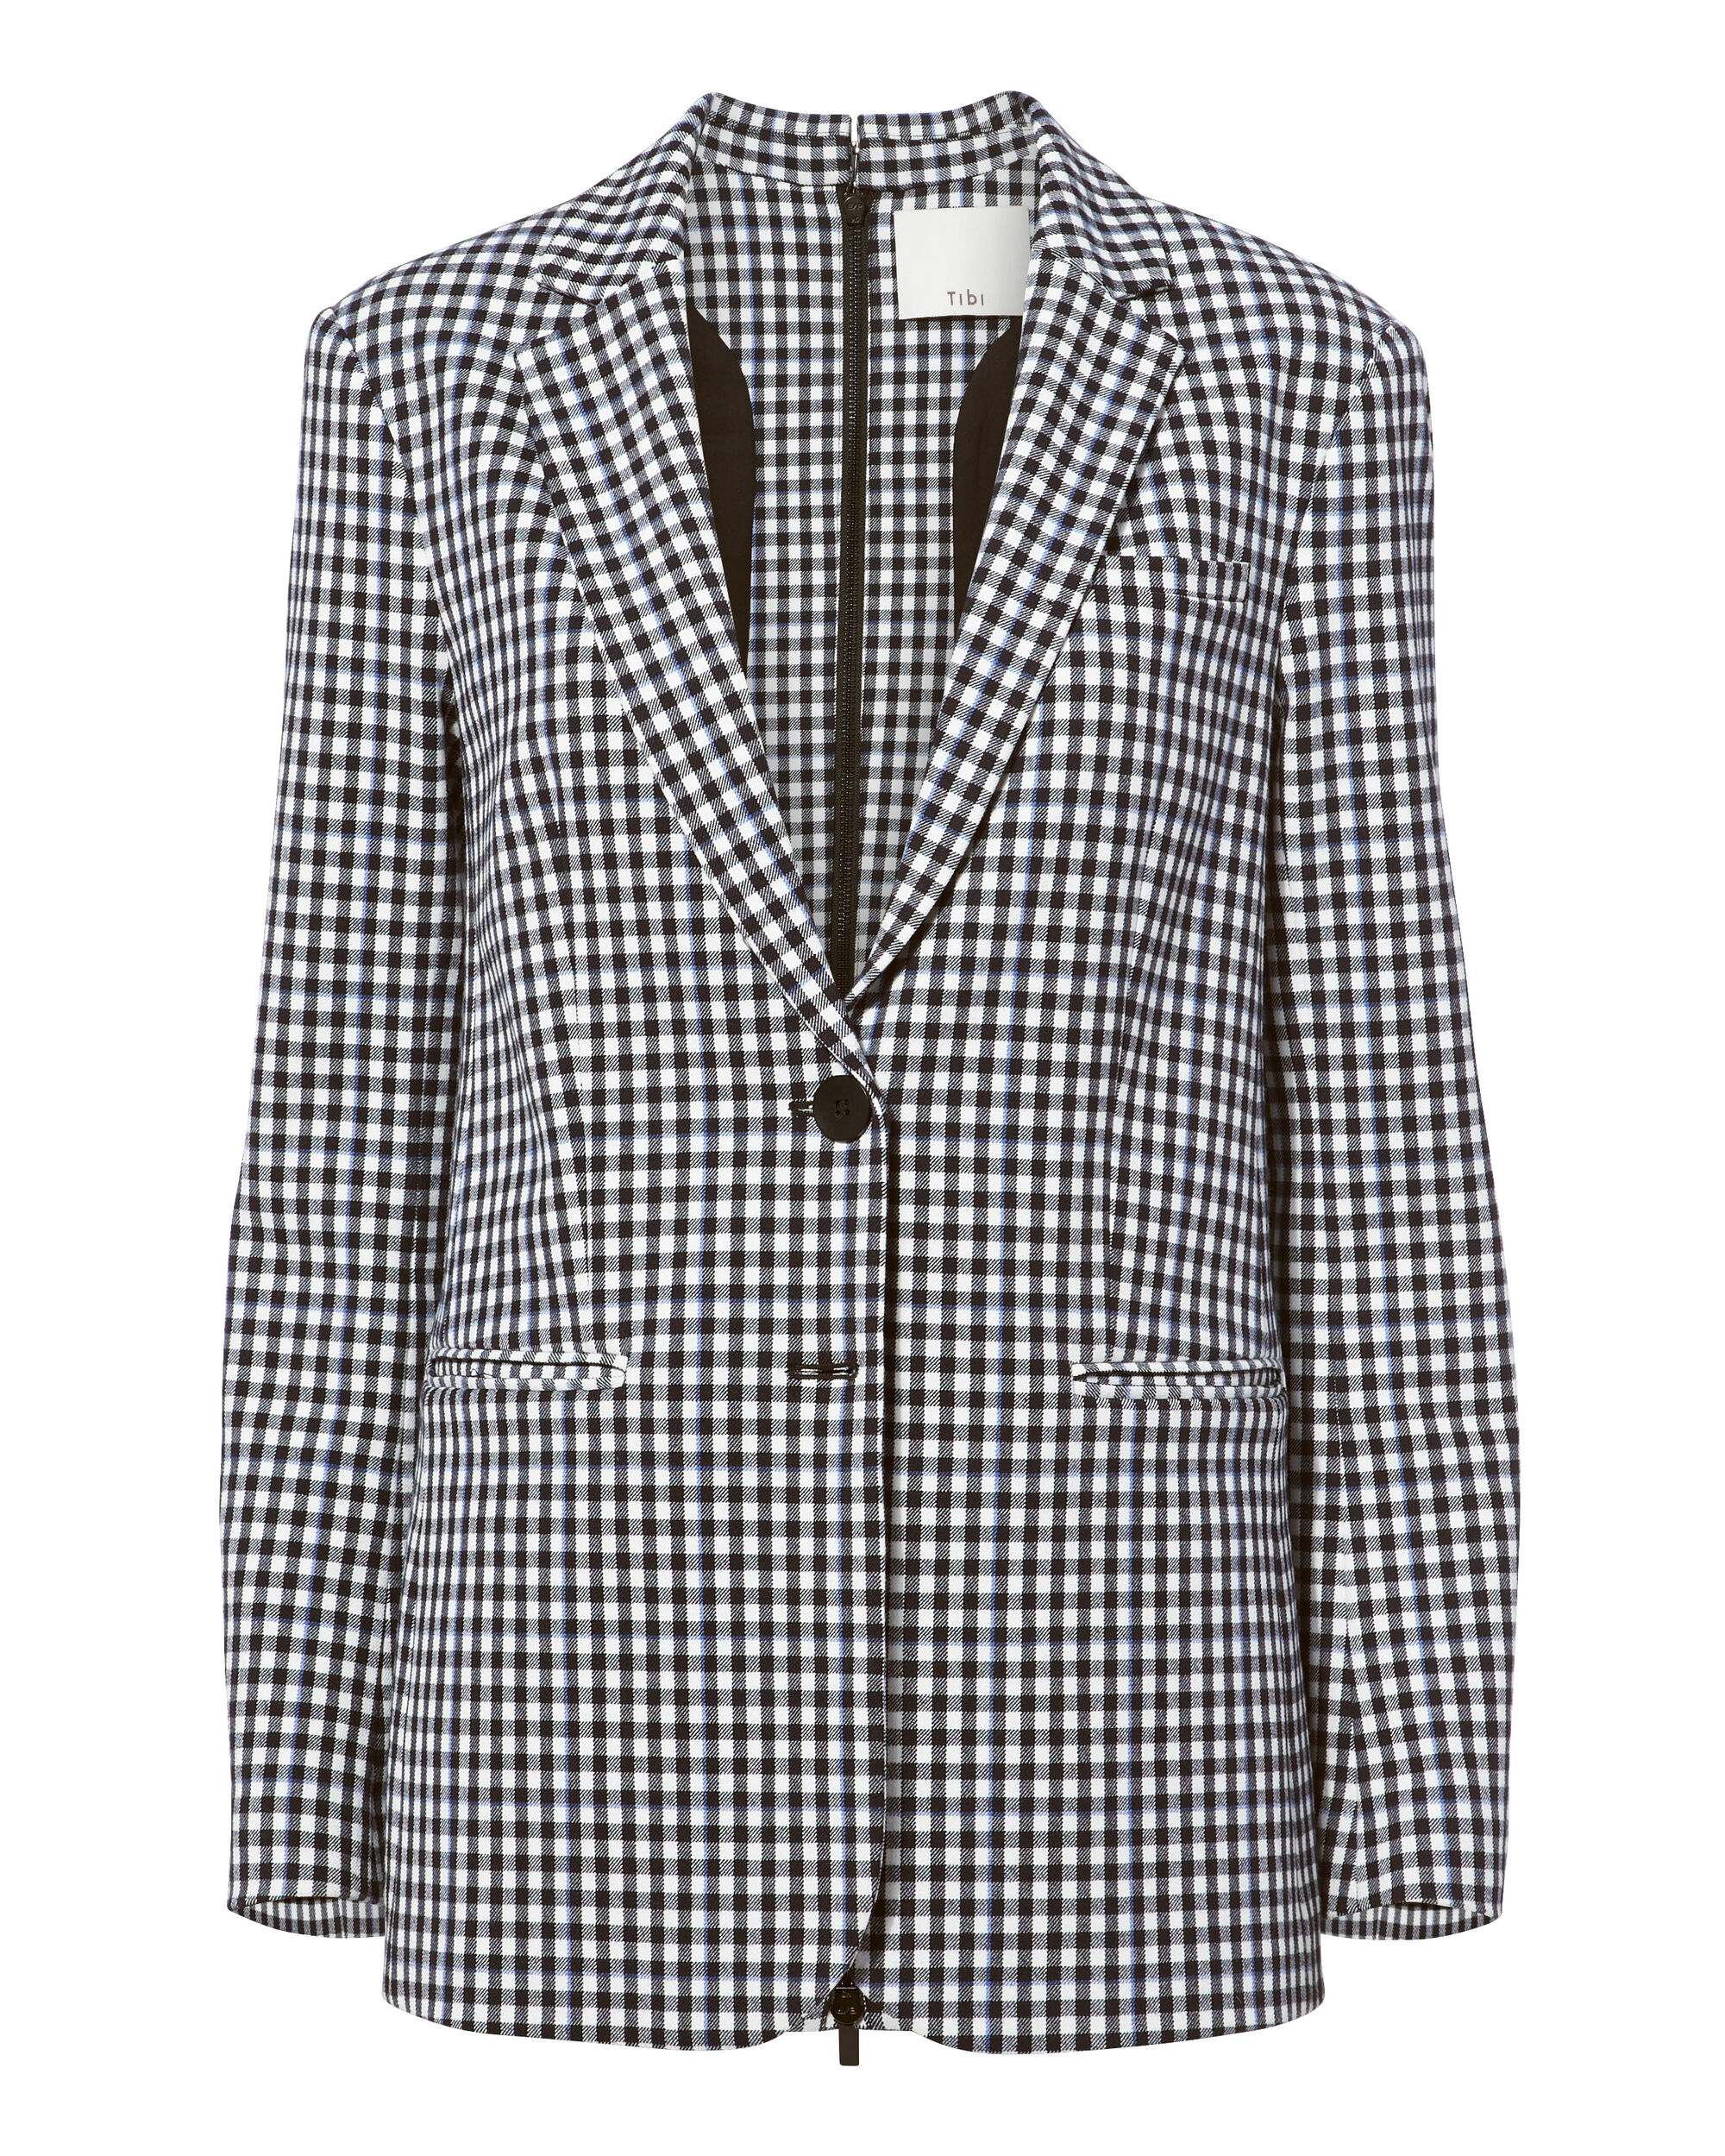 Gingham Men'S Blazer With Back Zip Detail, Black/White